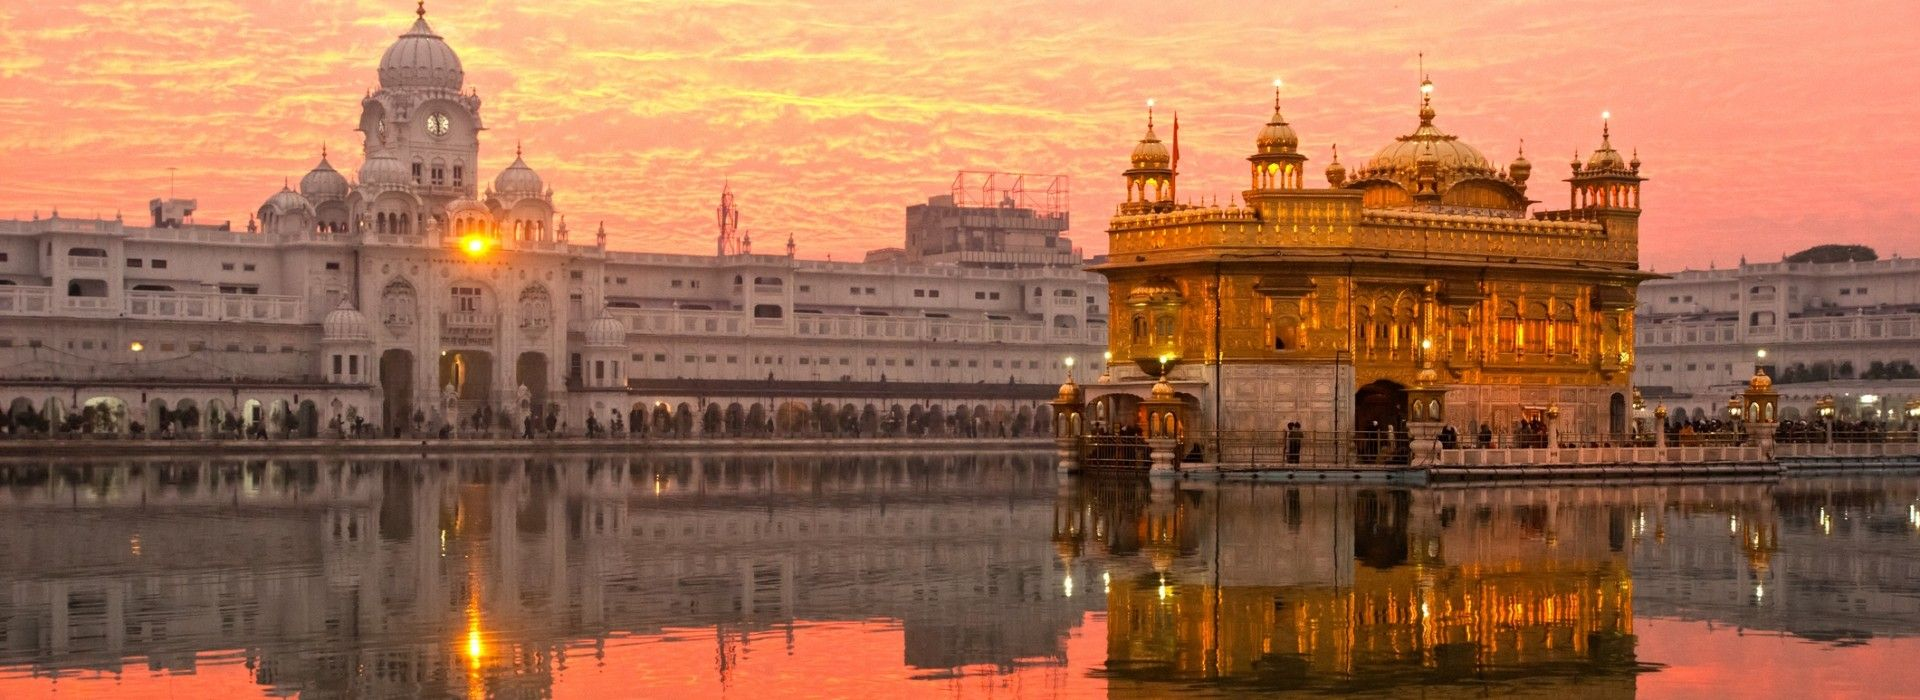 Sightseeing tours in India include visits to many enticing places